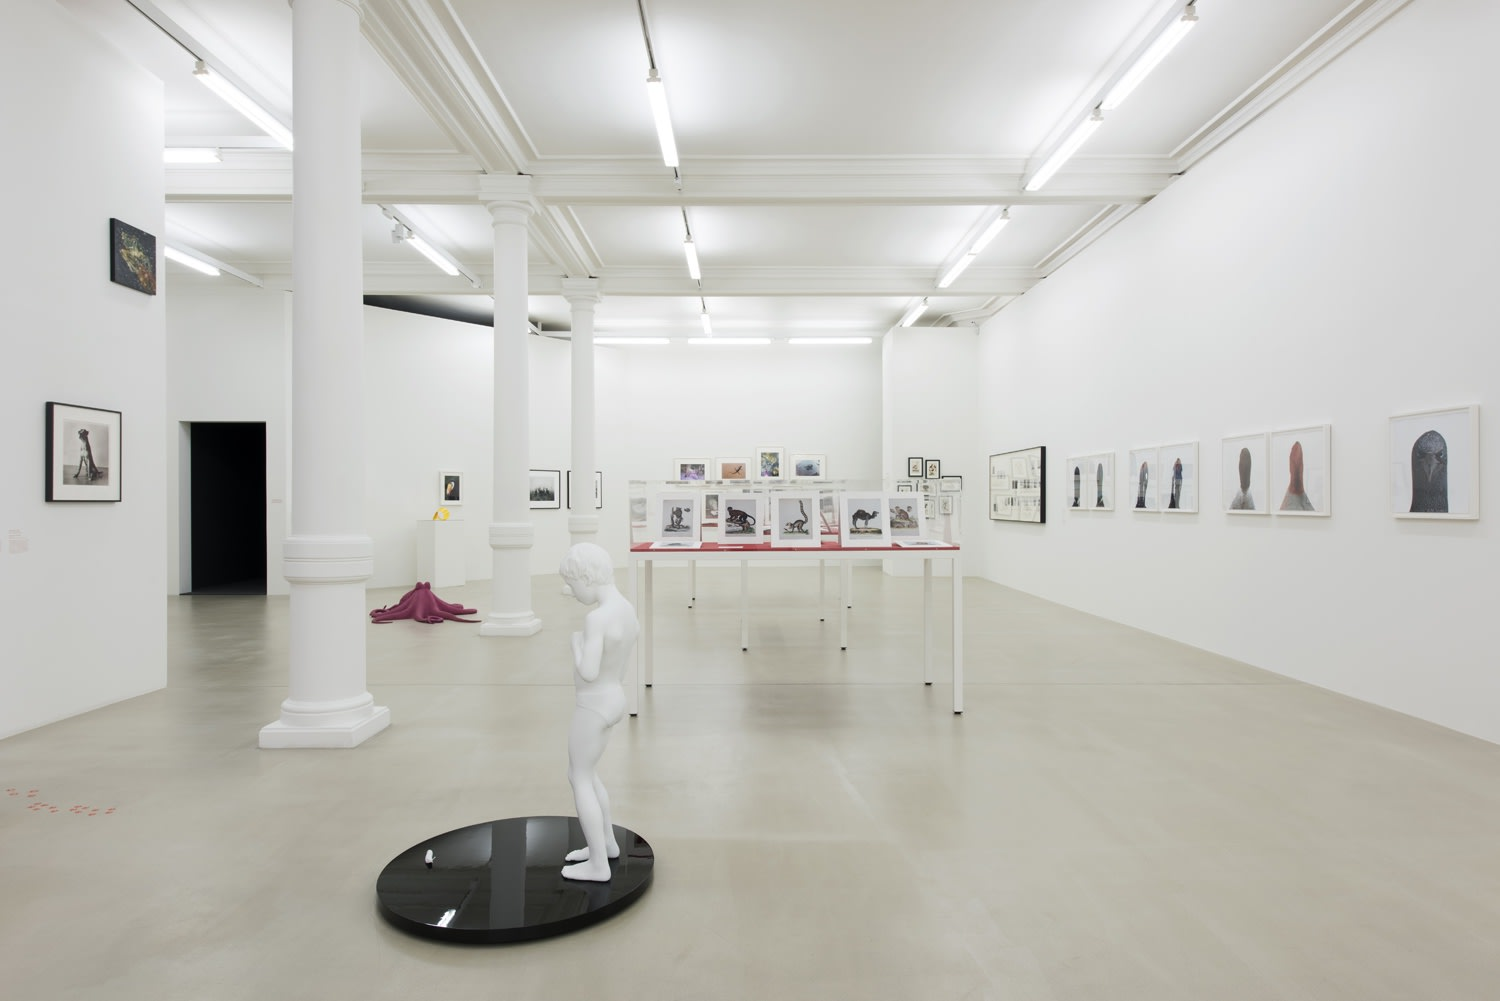 Gallery installation view of gallery as whole including a sculpture of a child on a black circular platform.